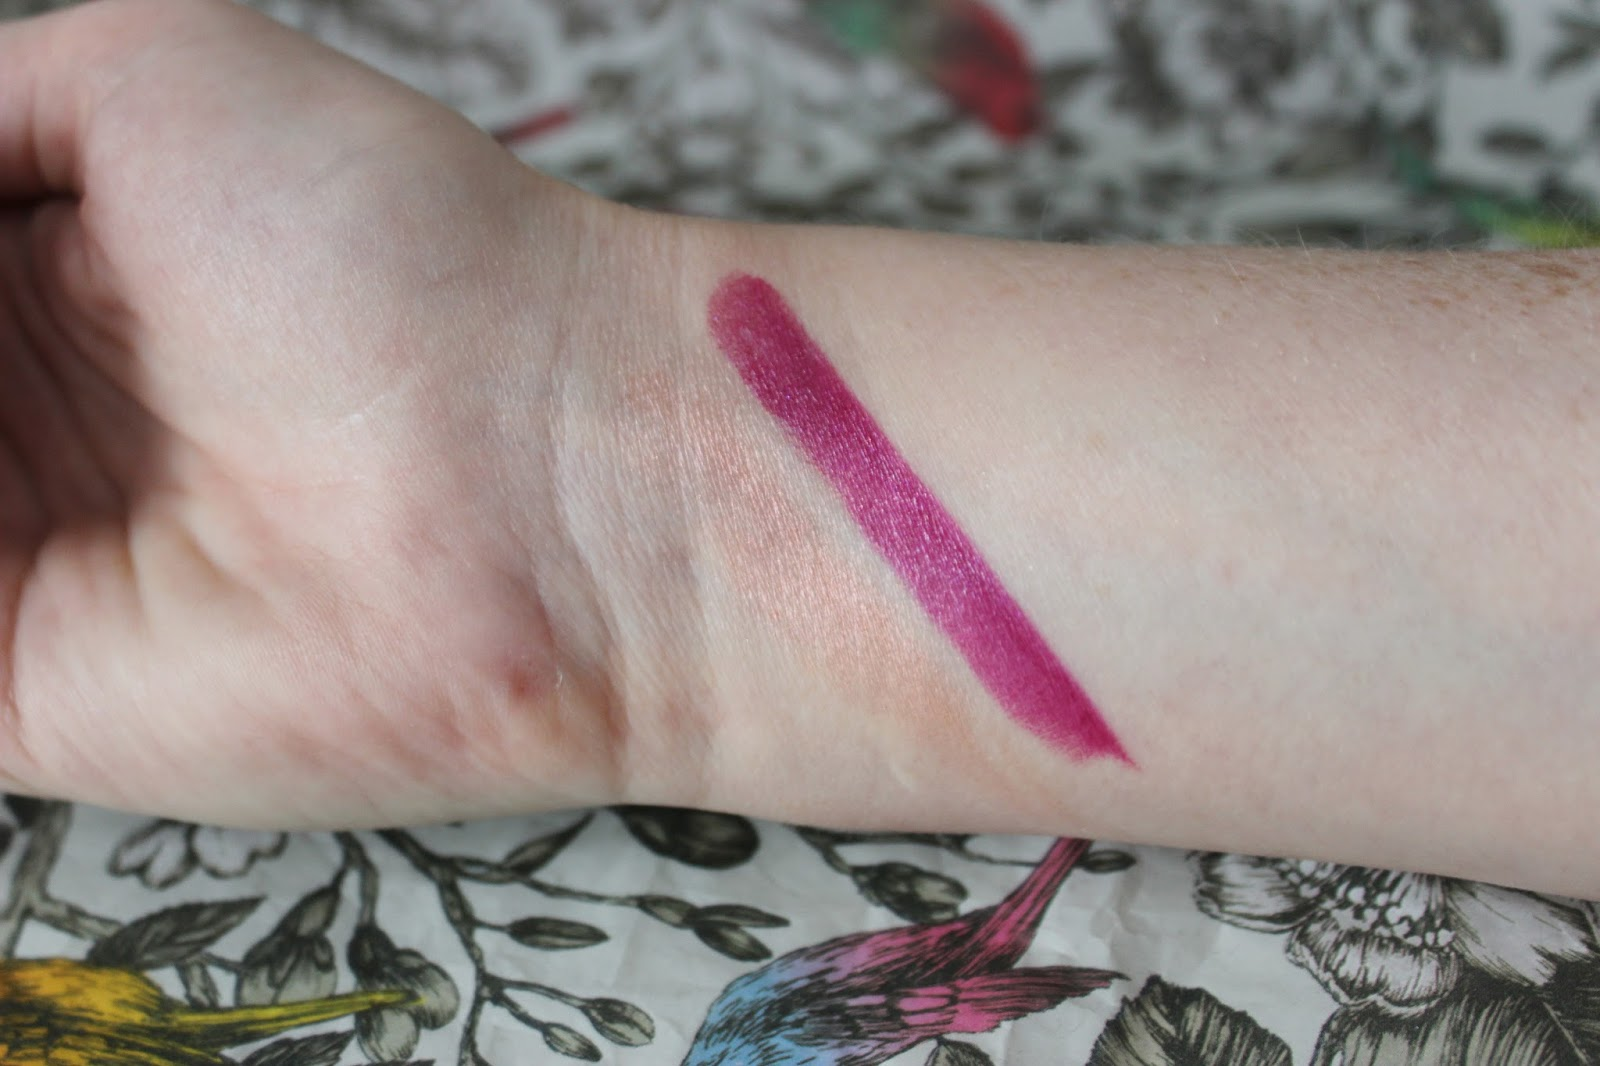 Topshop metallic makeup - Drive lipstick and pulse blusher swatches